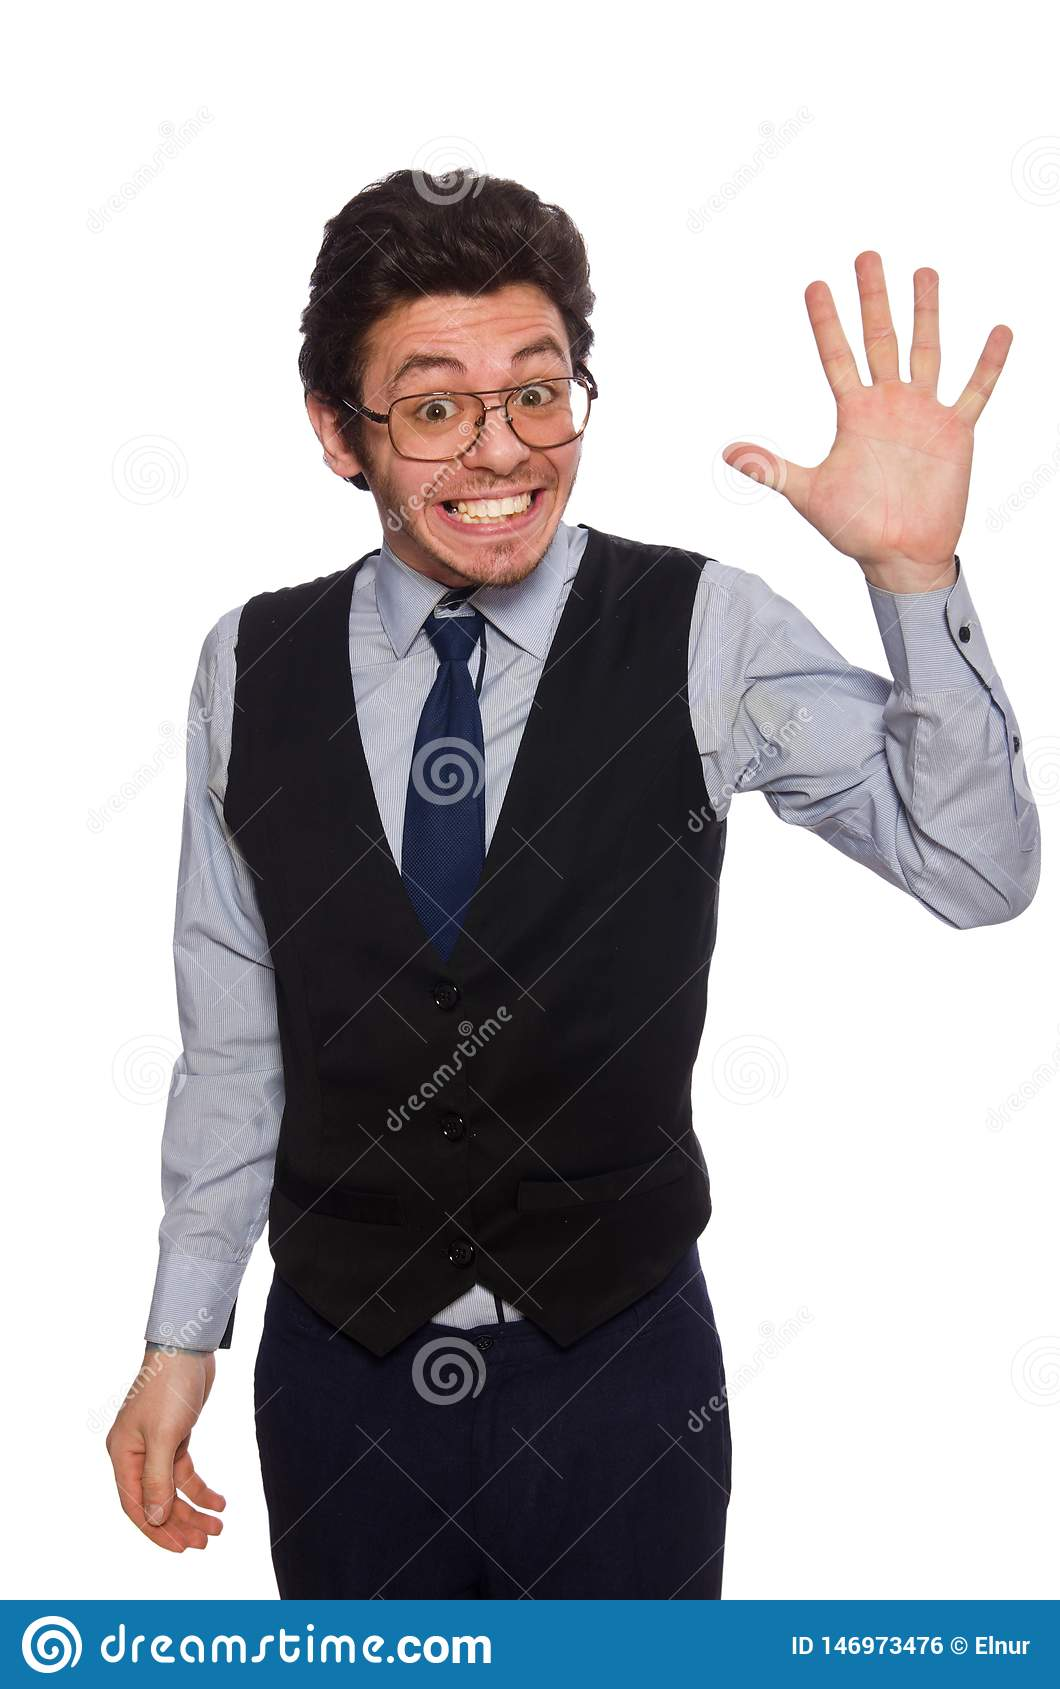 The young businessman in funny concept on white